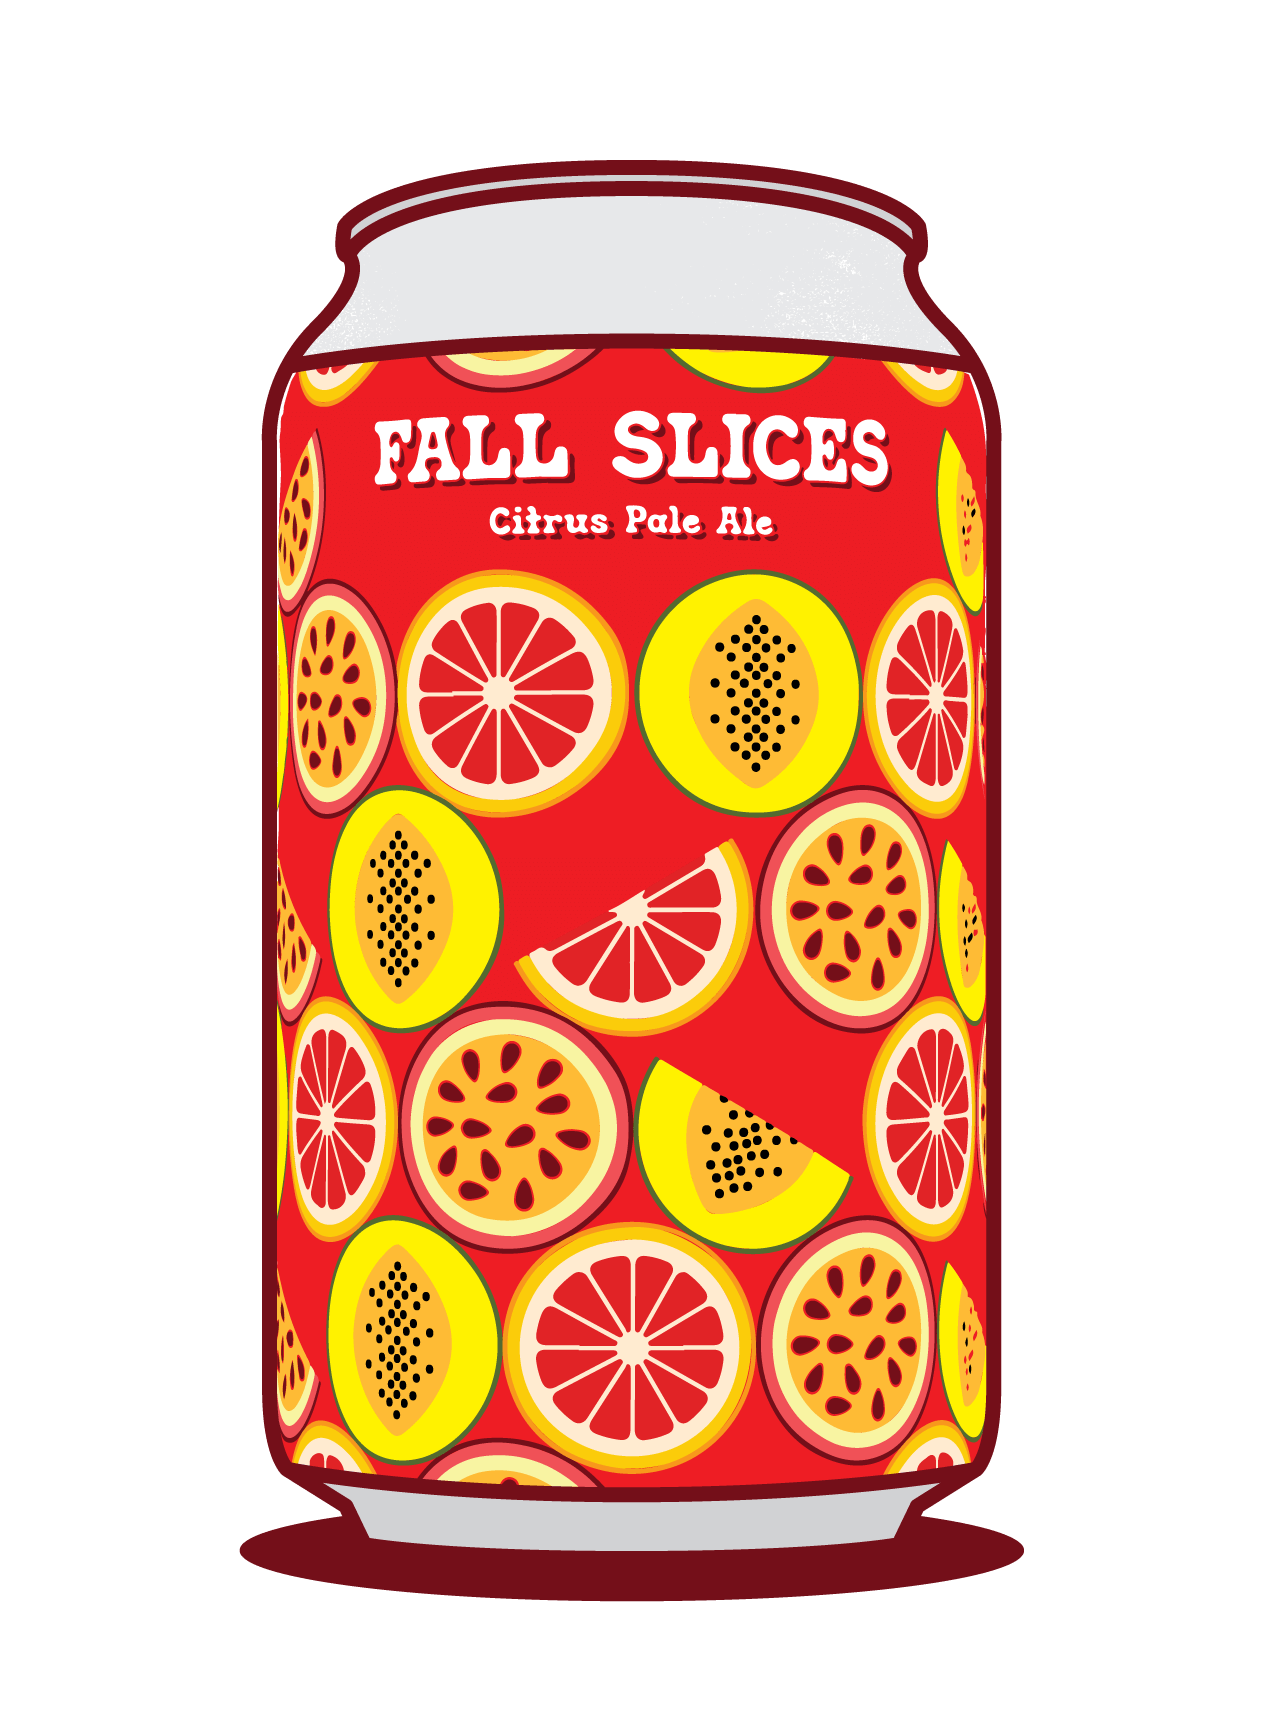 Fall Slices Image